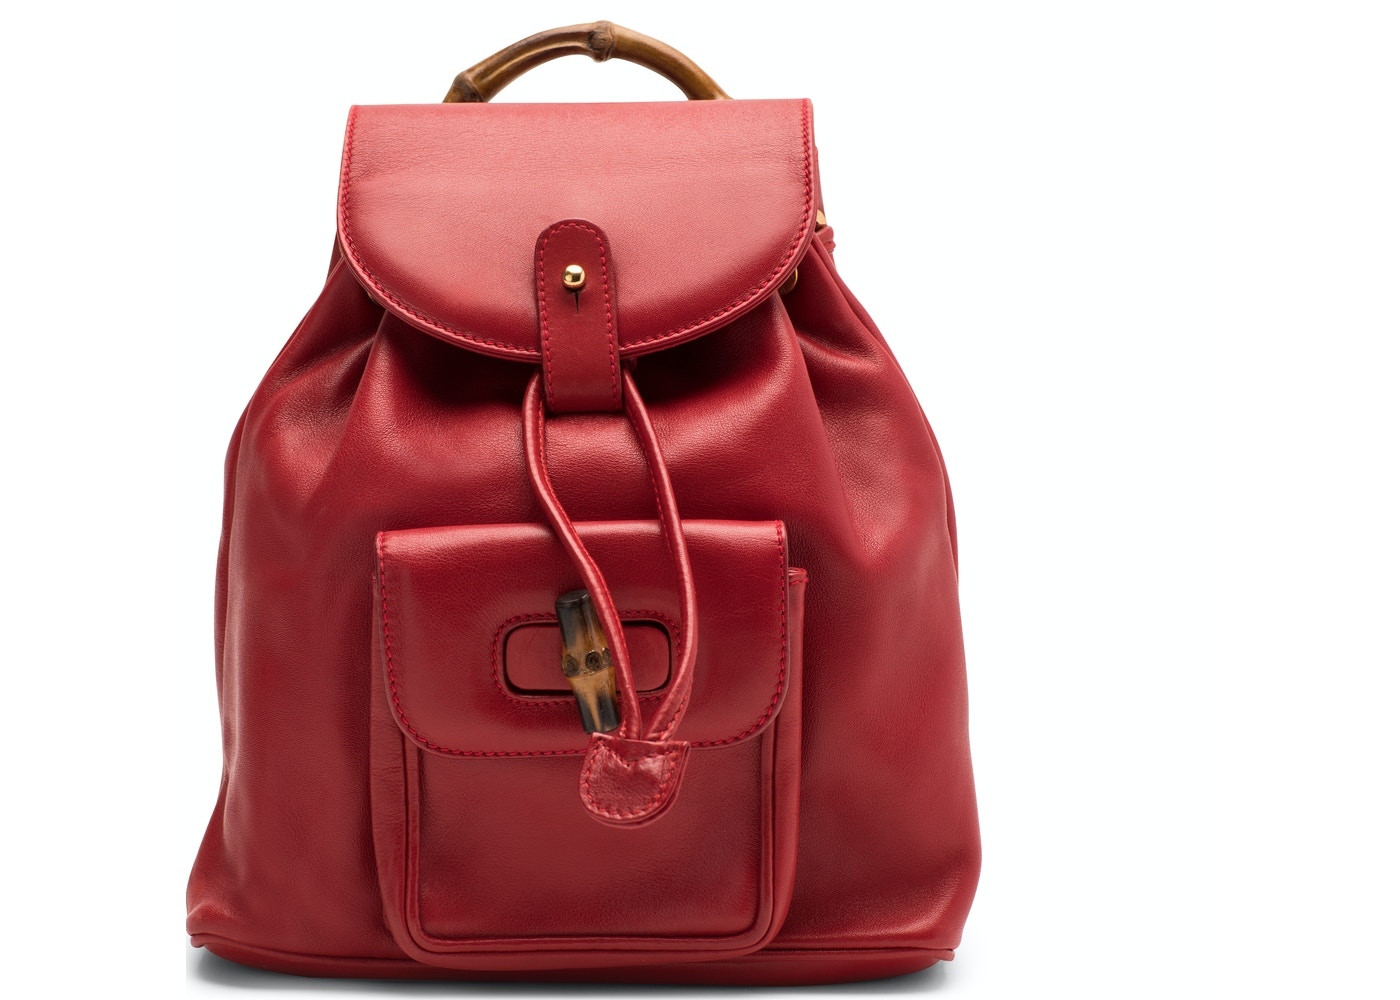 Gucci Bamboo Backpack Mini Leather Red. Mini Leather Red f17827c605